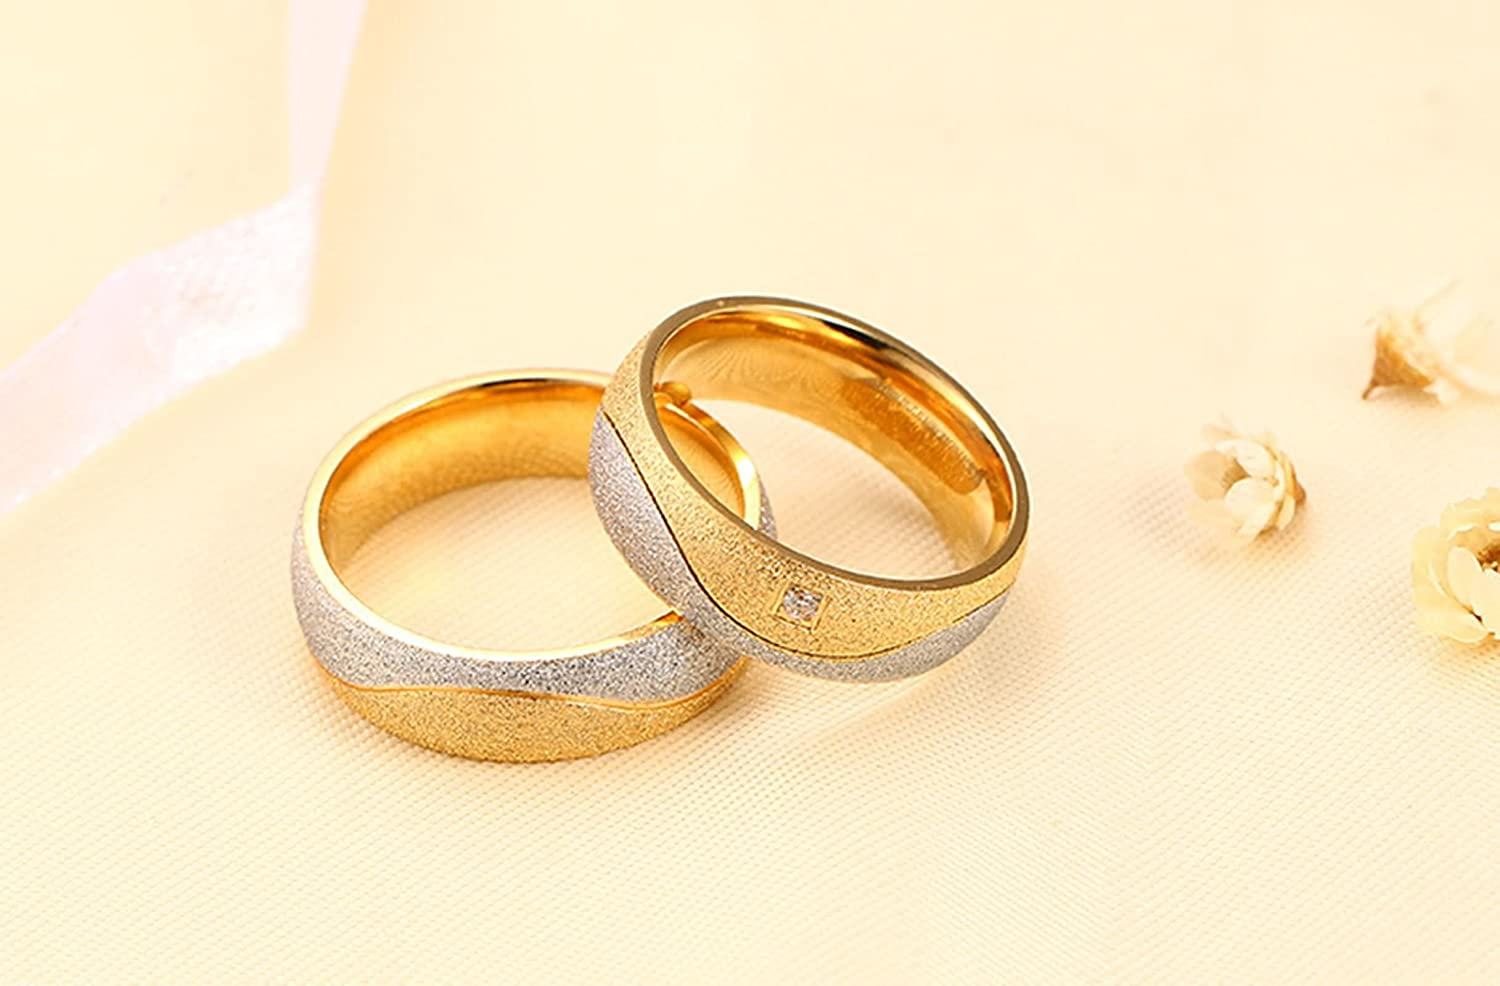 ANAZOZ Engagement Rings Stainless Steel Two Tone Cubic Zirconia Silver Gold Sand Wedding Engagement Rings